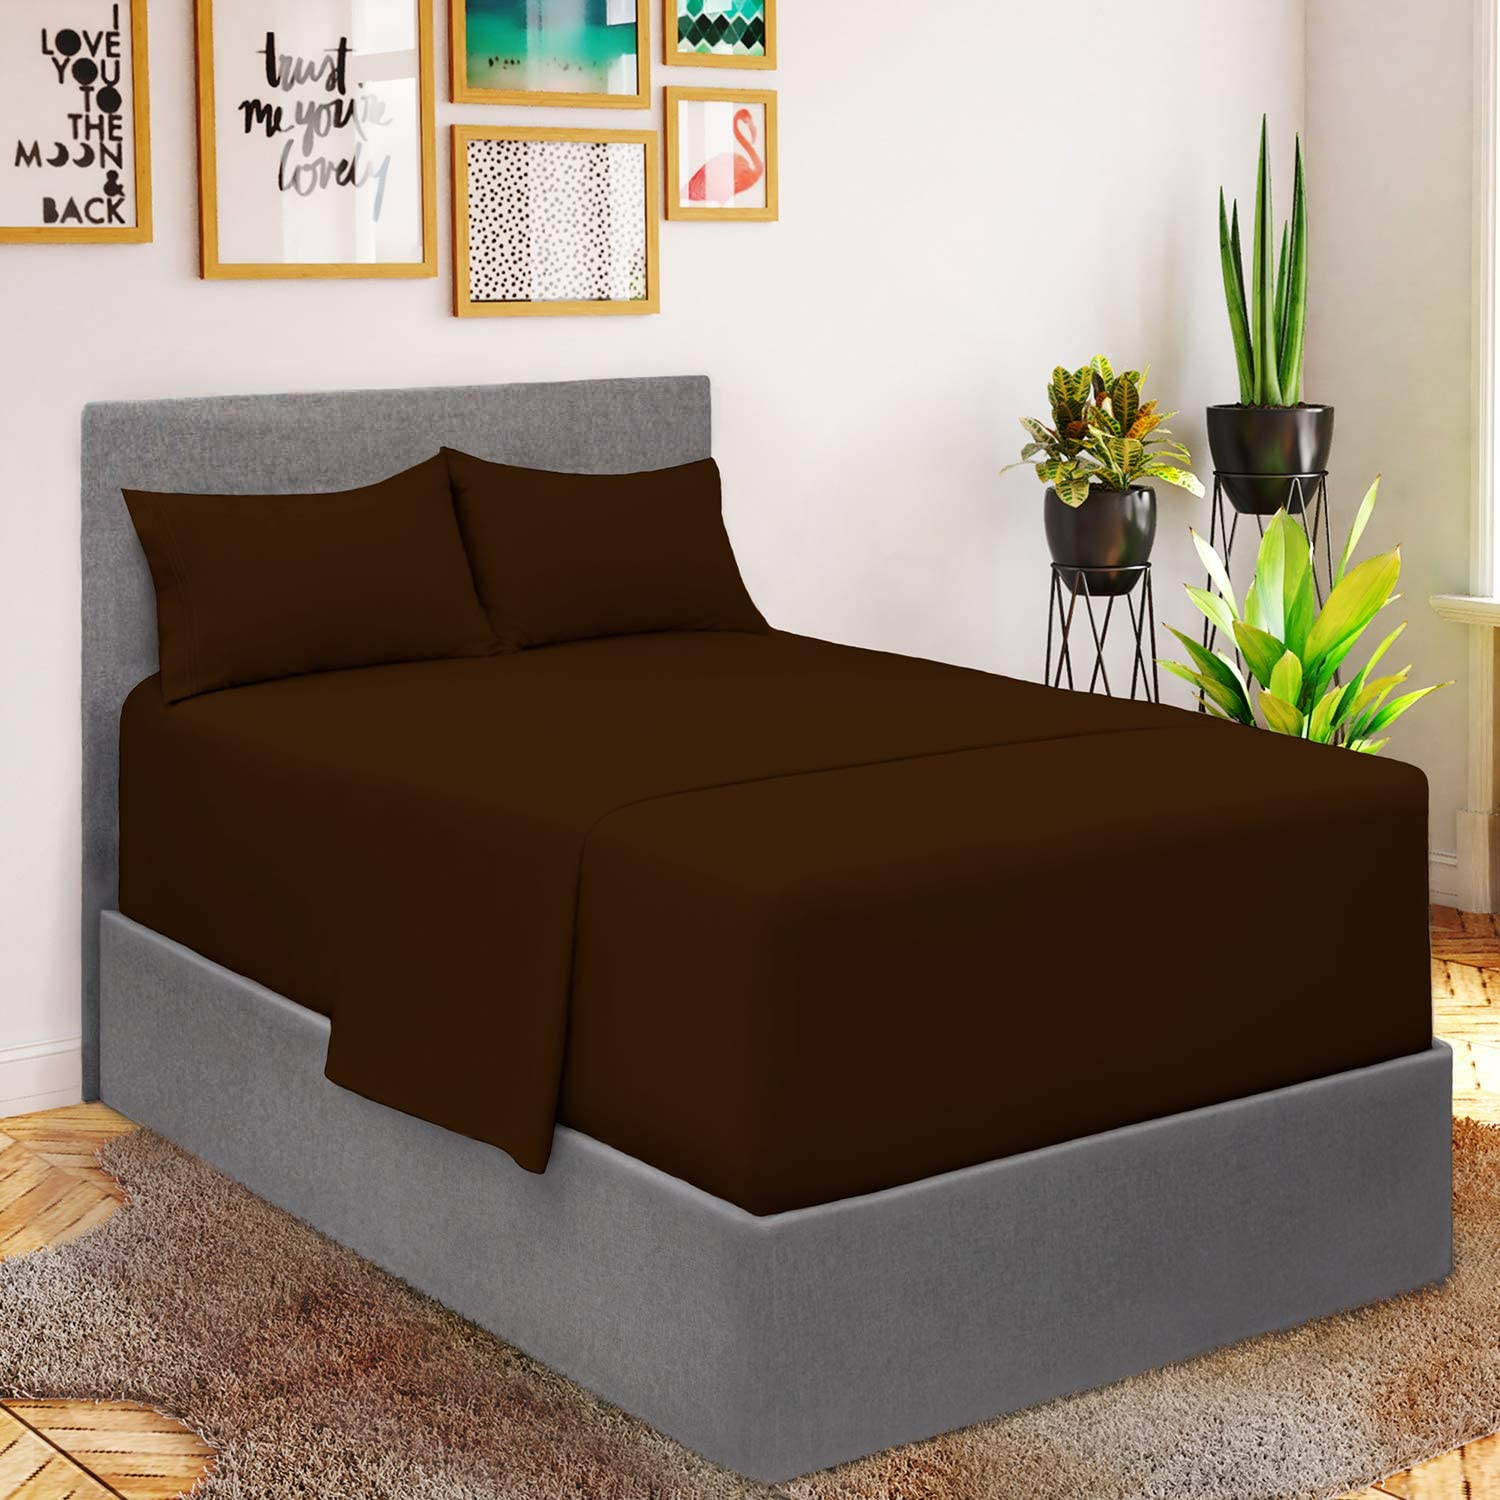 Mellanni Extra Deep Pocket Twin Sheet Set - Twin Bedding for Boys - Hotel Luxury 1800 Bedding Sheets & Pillowcases - Ultra Soft Cooling Bed Sheet Set - 3 Piece (Twin, Brown)